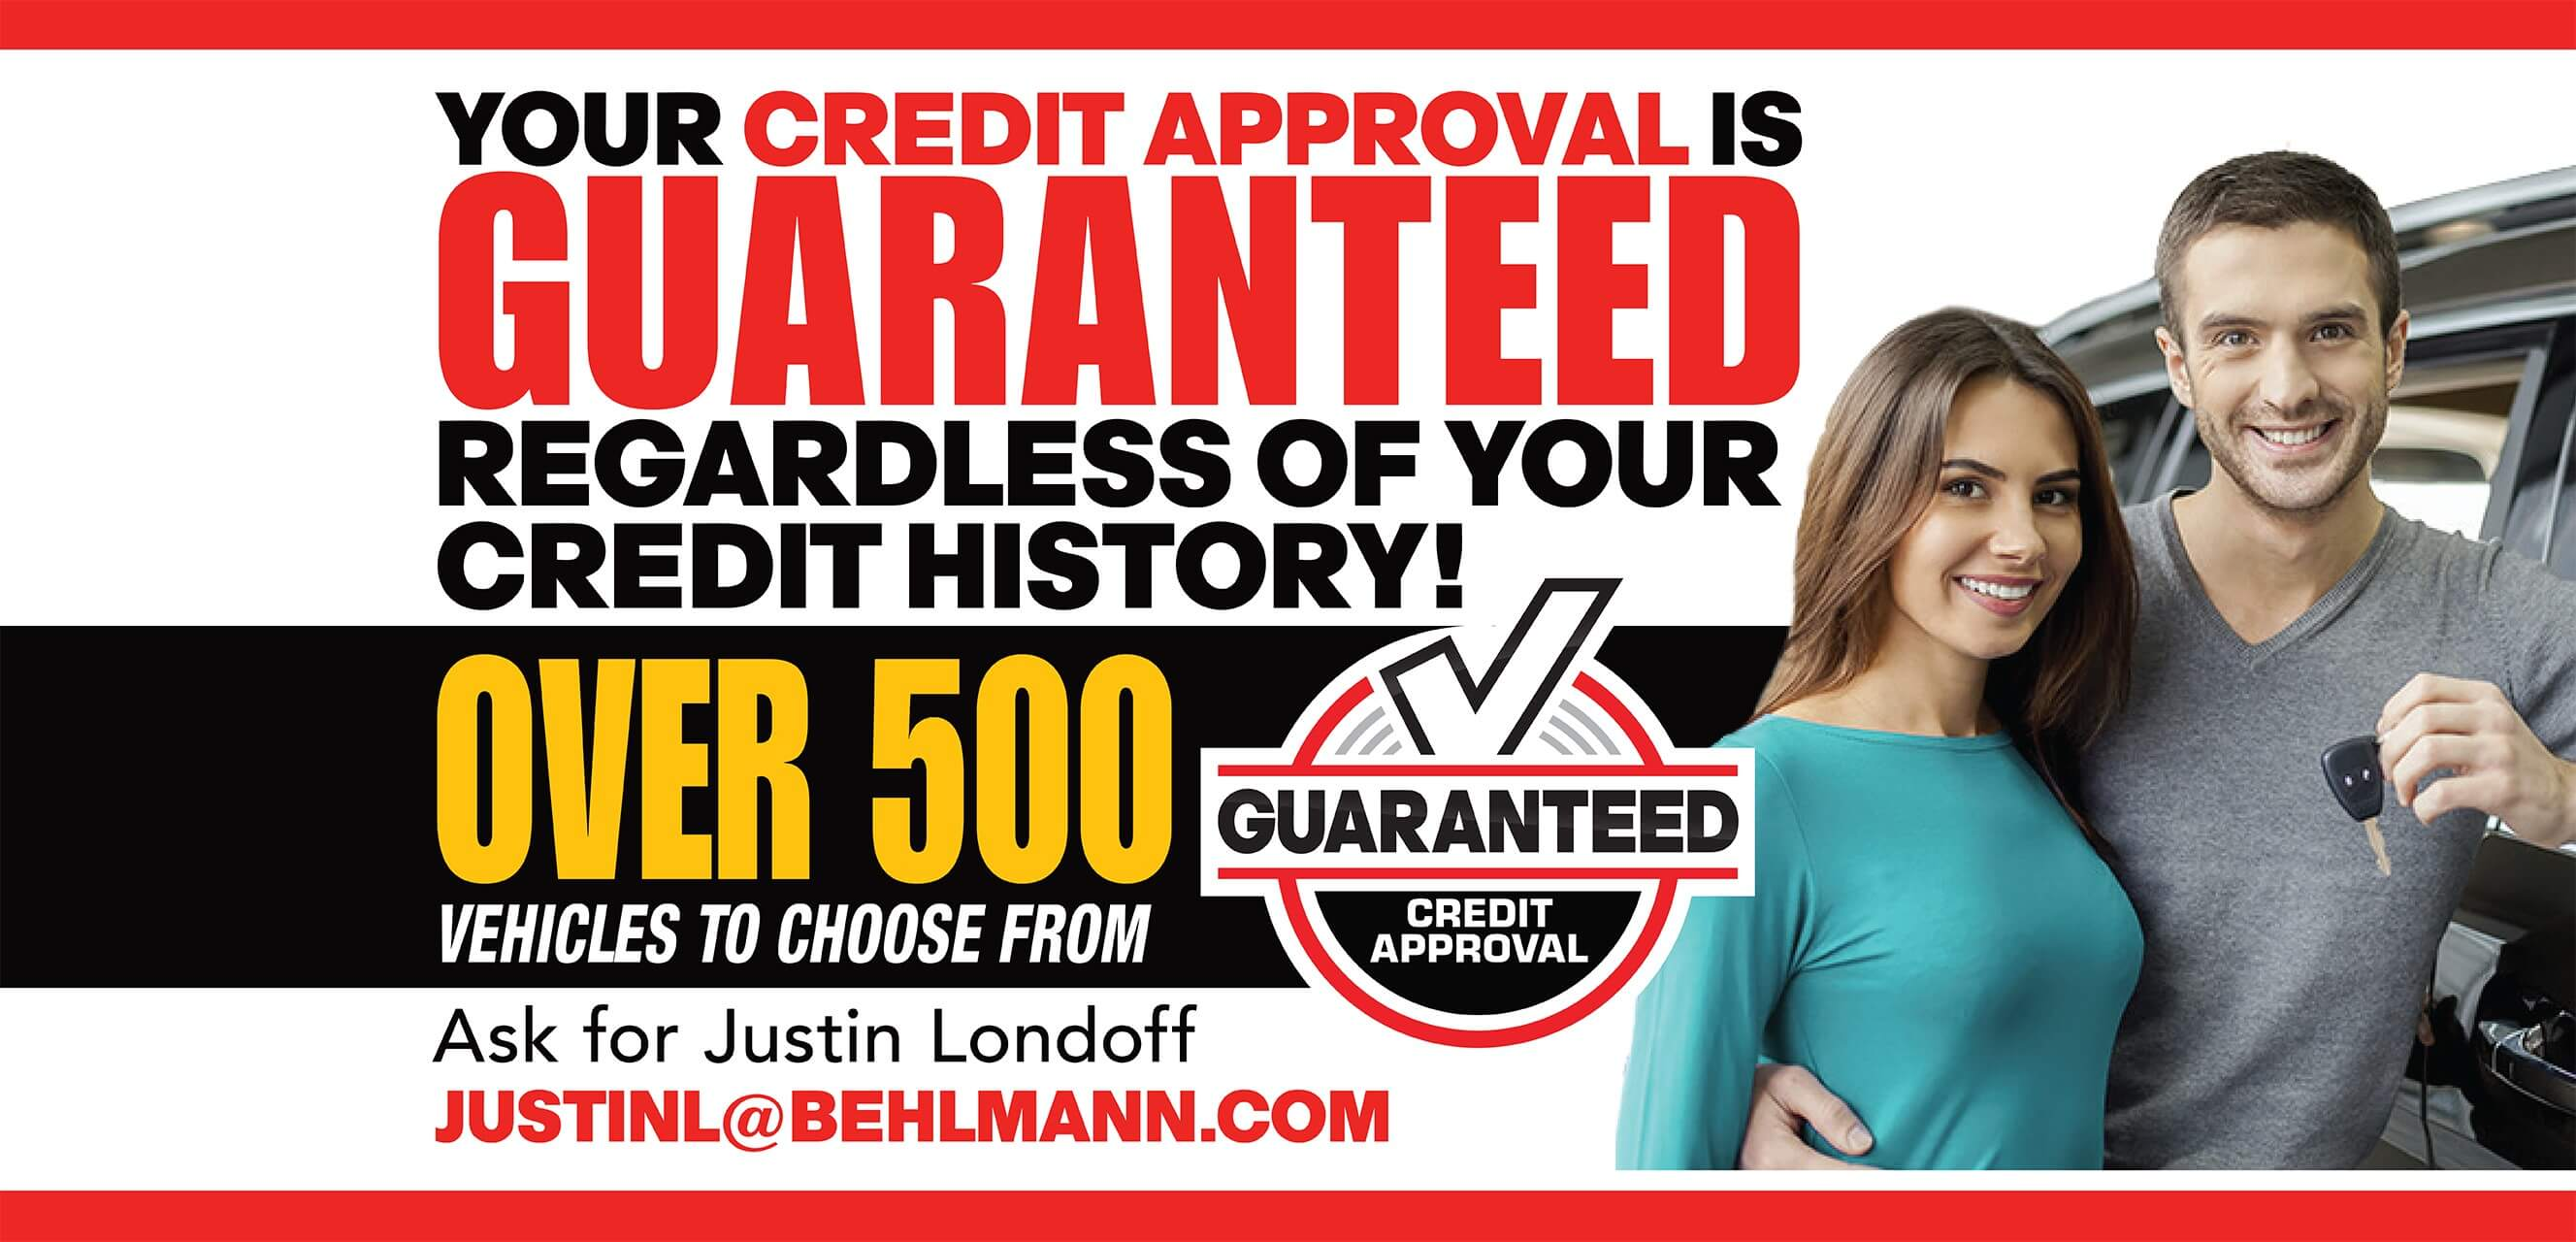 Your Credit Approval is GUARANTEED, regardless of credit history!